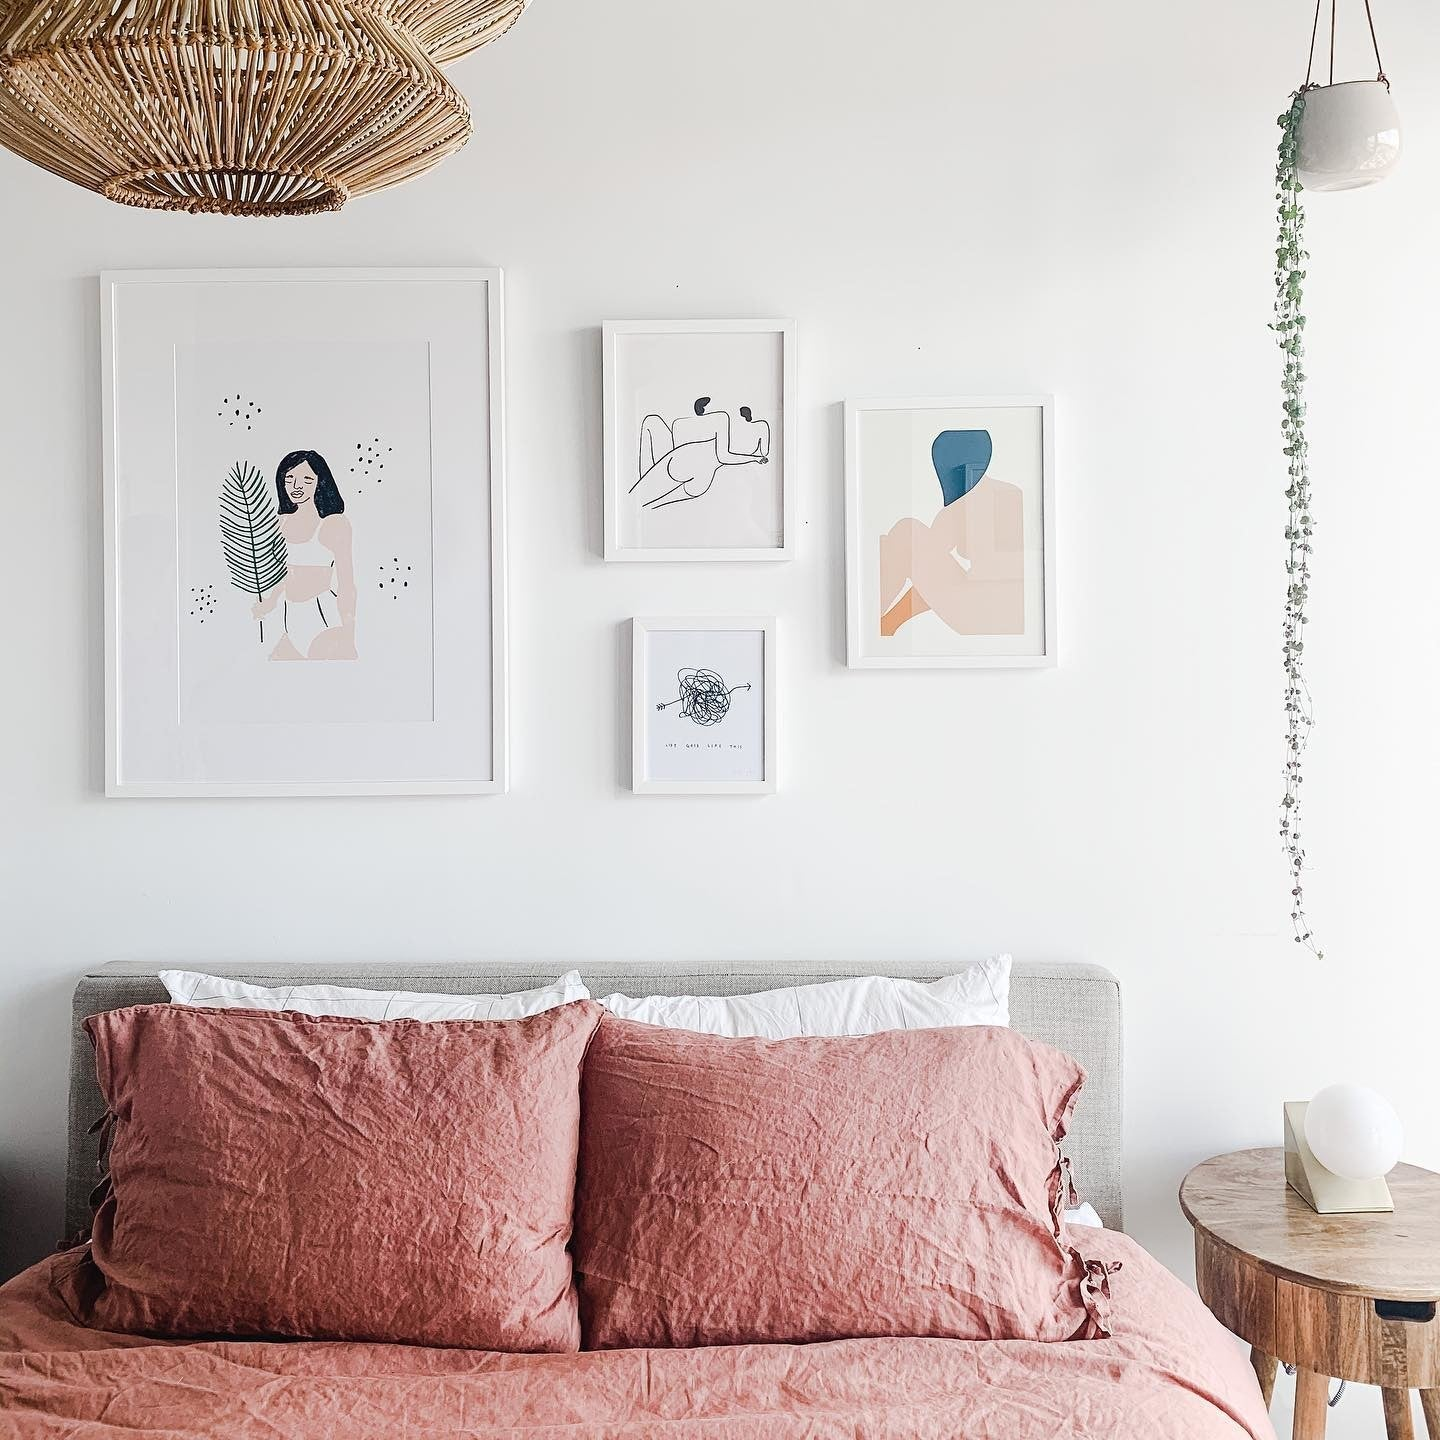 Bedroom Gallery Wall of White Framed Prints